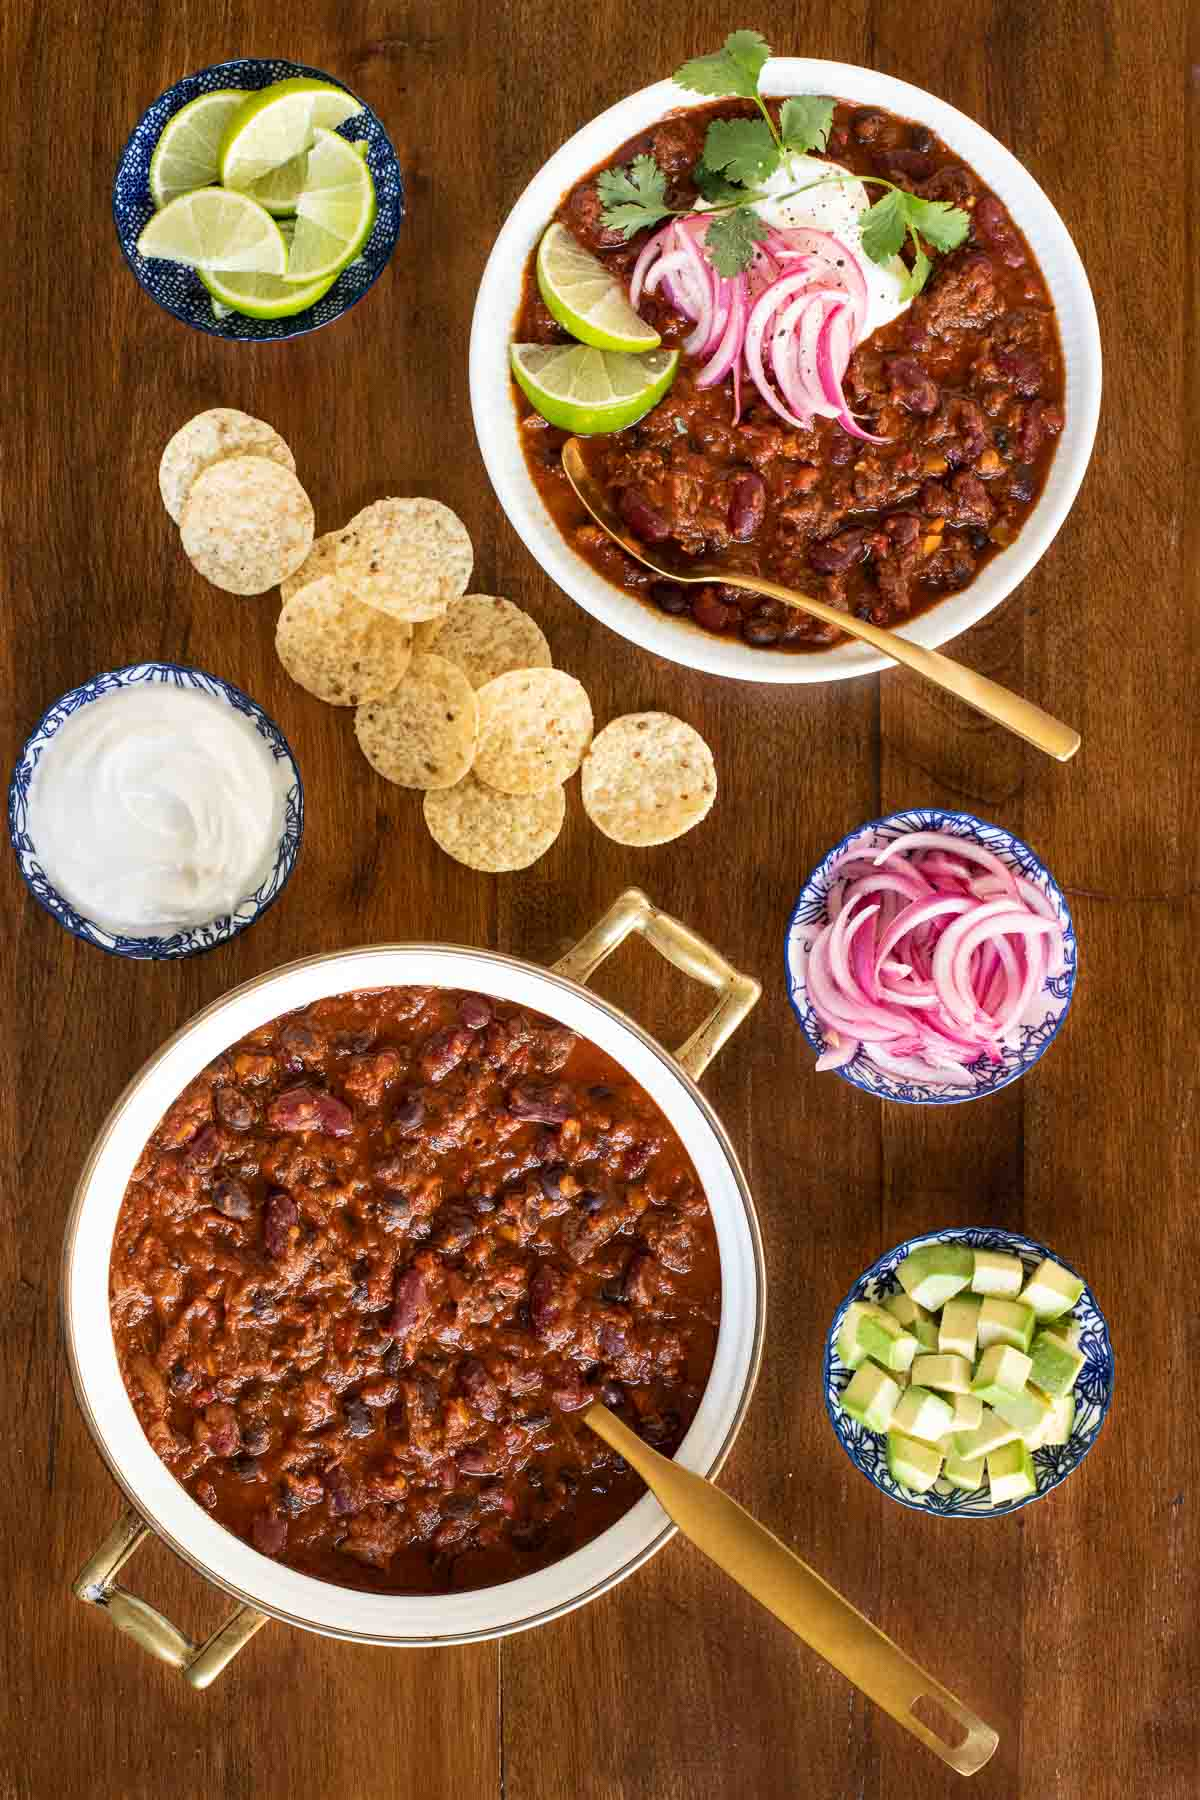 Overhead photo of a pot and an individual serving of Slow Roasted Short Rib Chili with bowls of diced avocados, lime wedges, tortilla chips, sour cream and pickled onions for garnish.